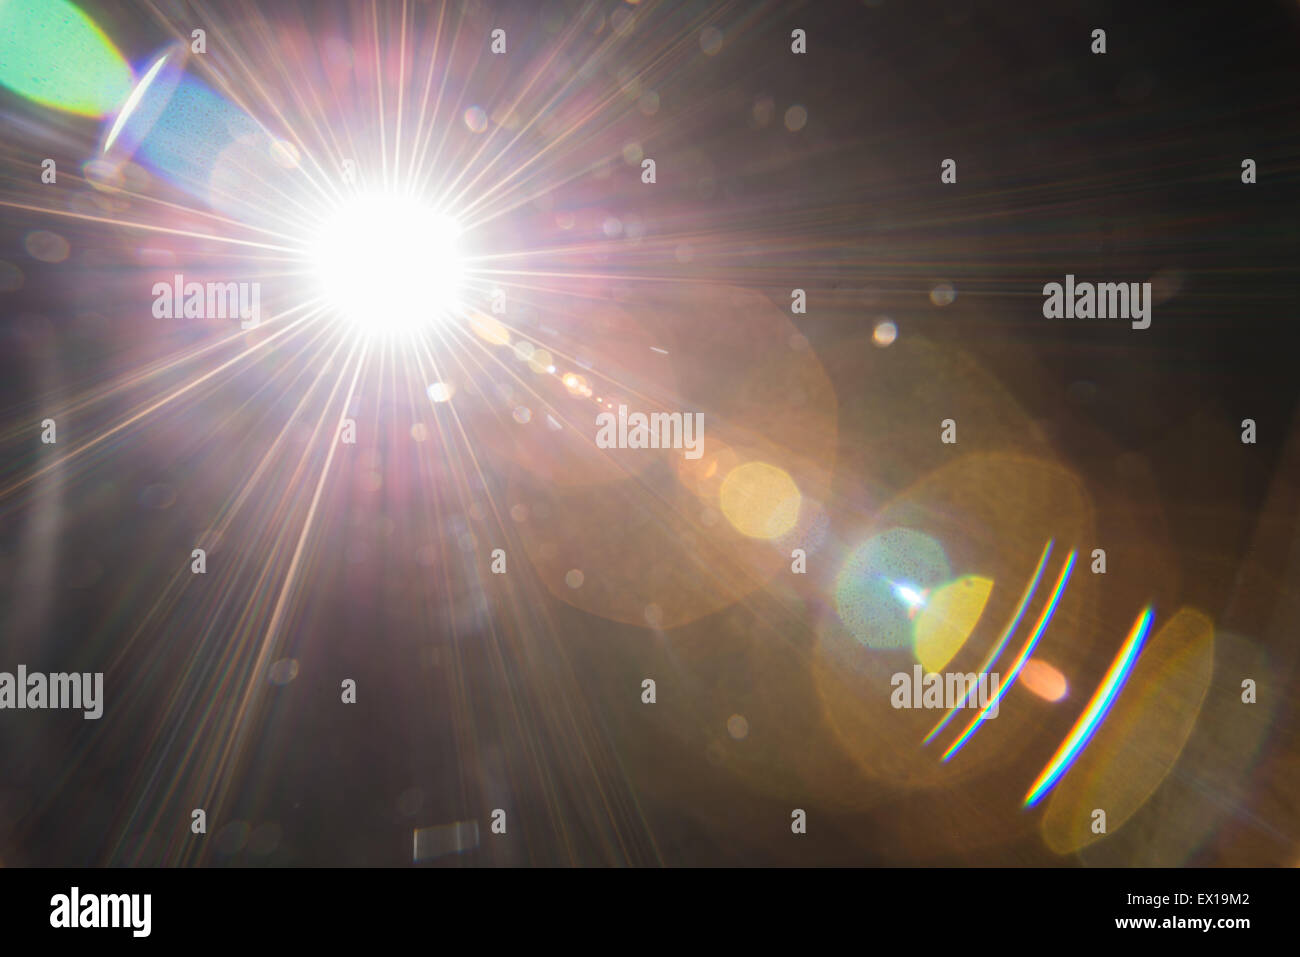 Natural lens flare. - Stock Image